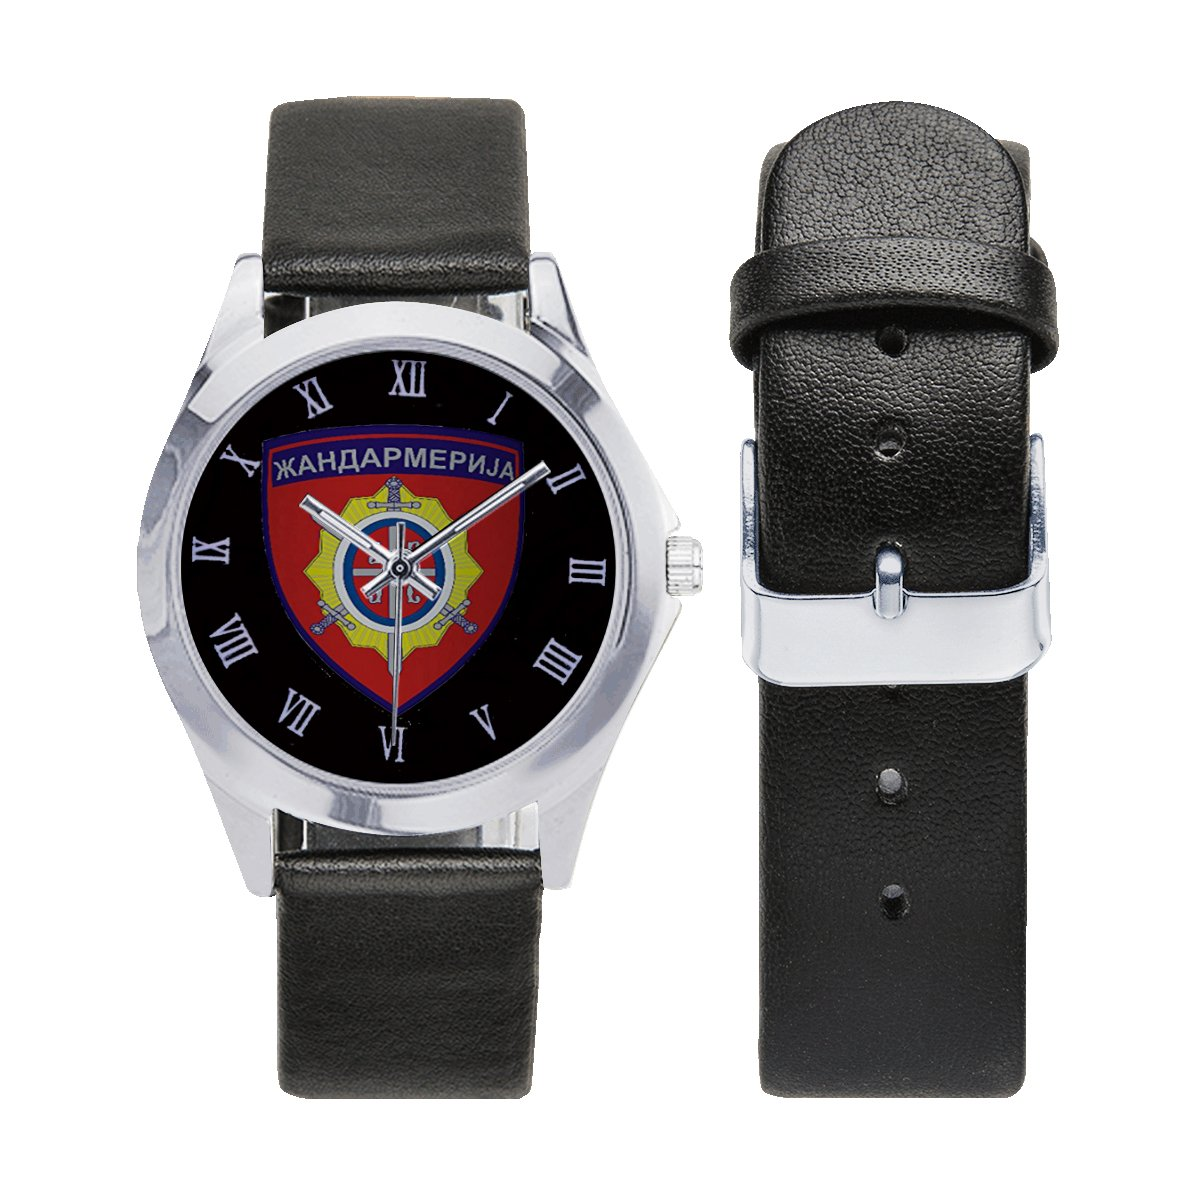 Gendarmerie Serbia Special Unit JSO Logo Leather Strap Watch Wrist Watches a perfect accessory